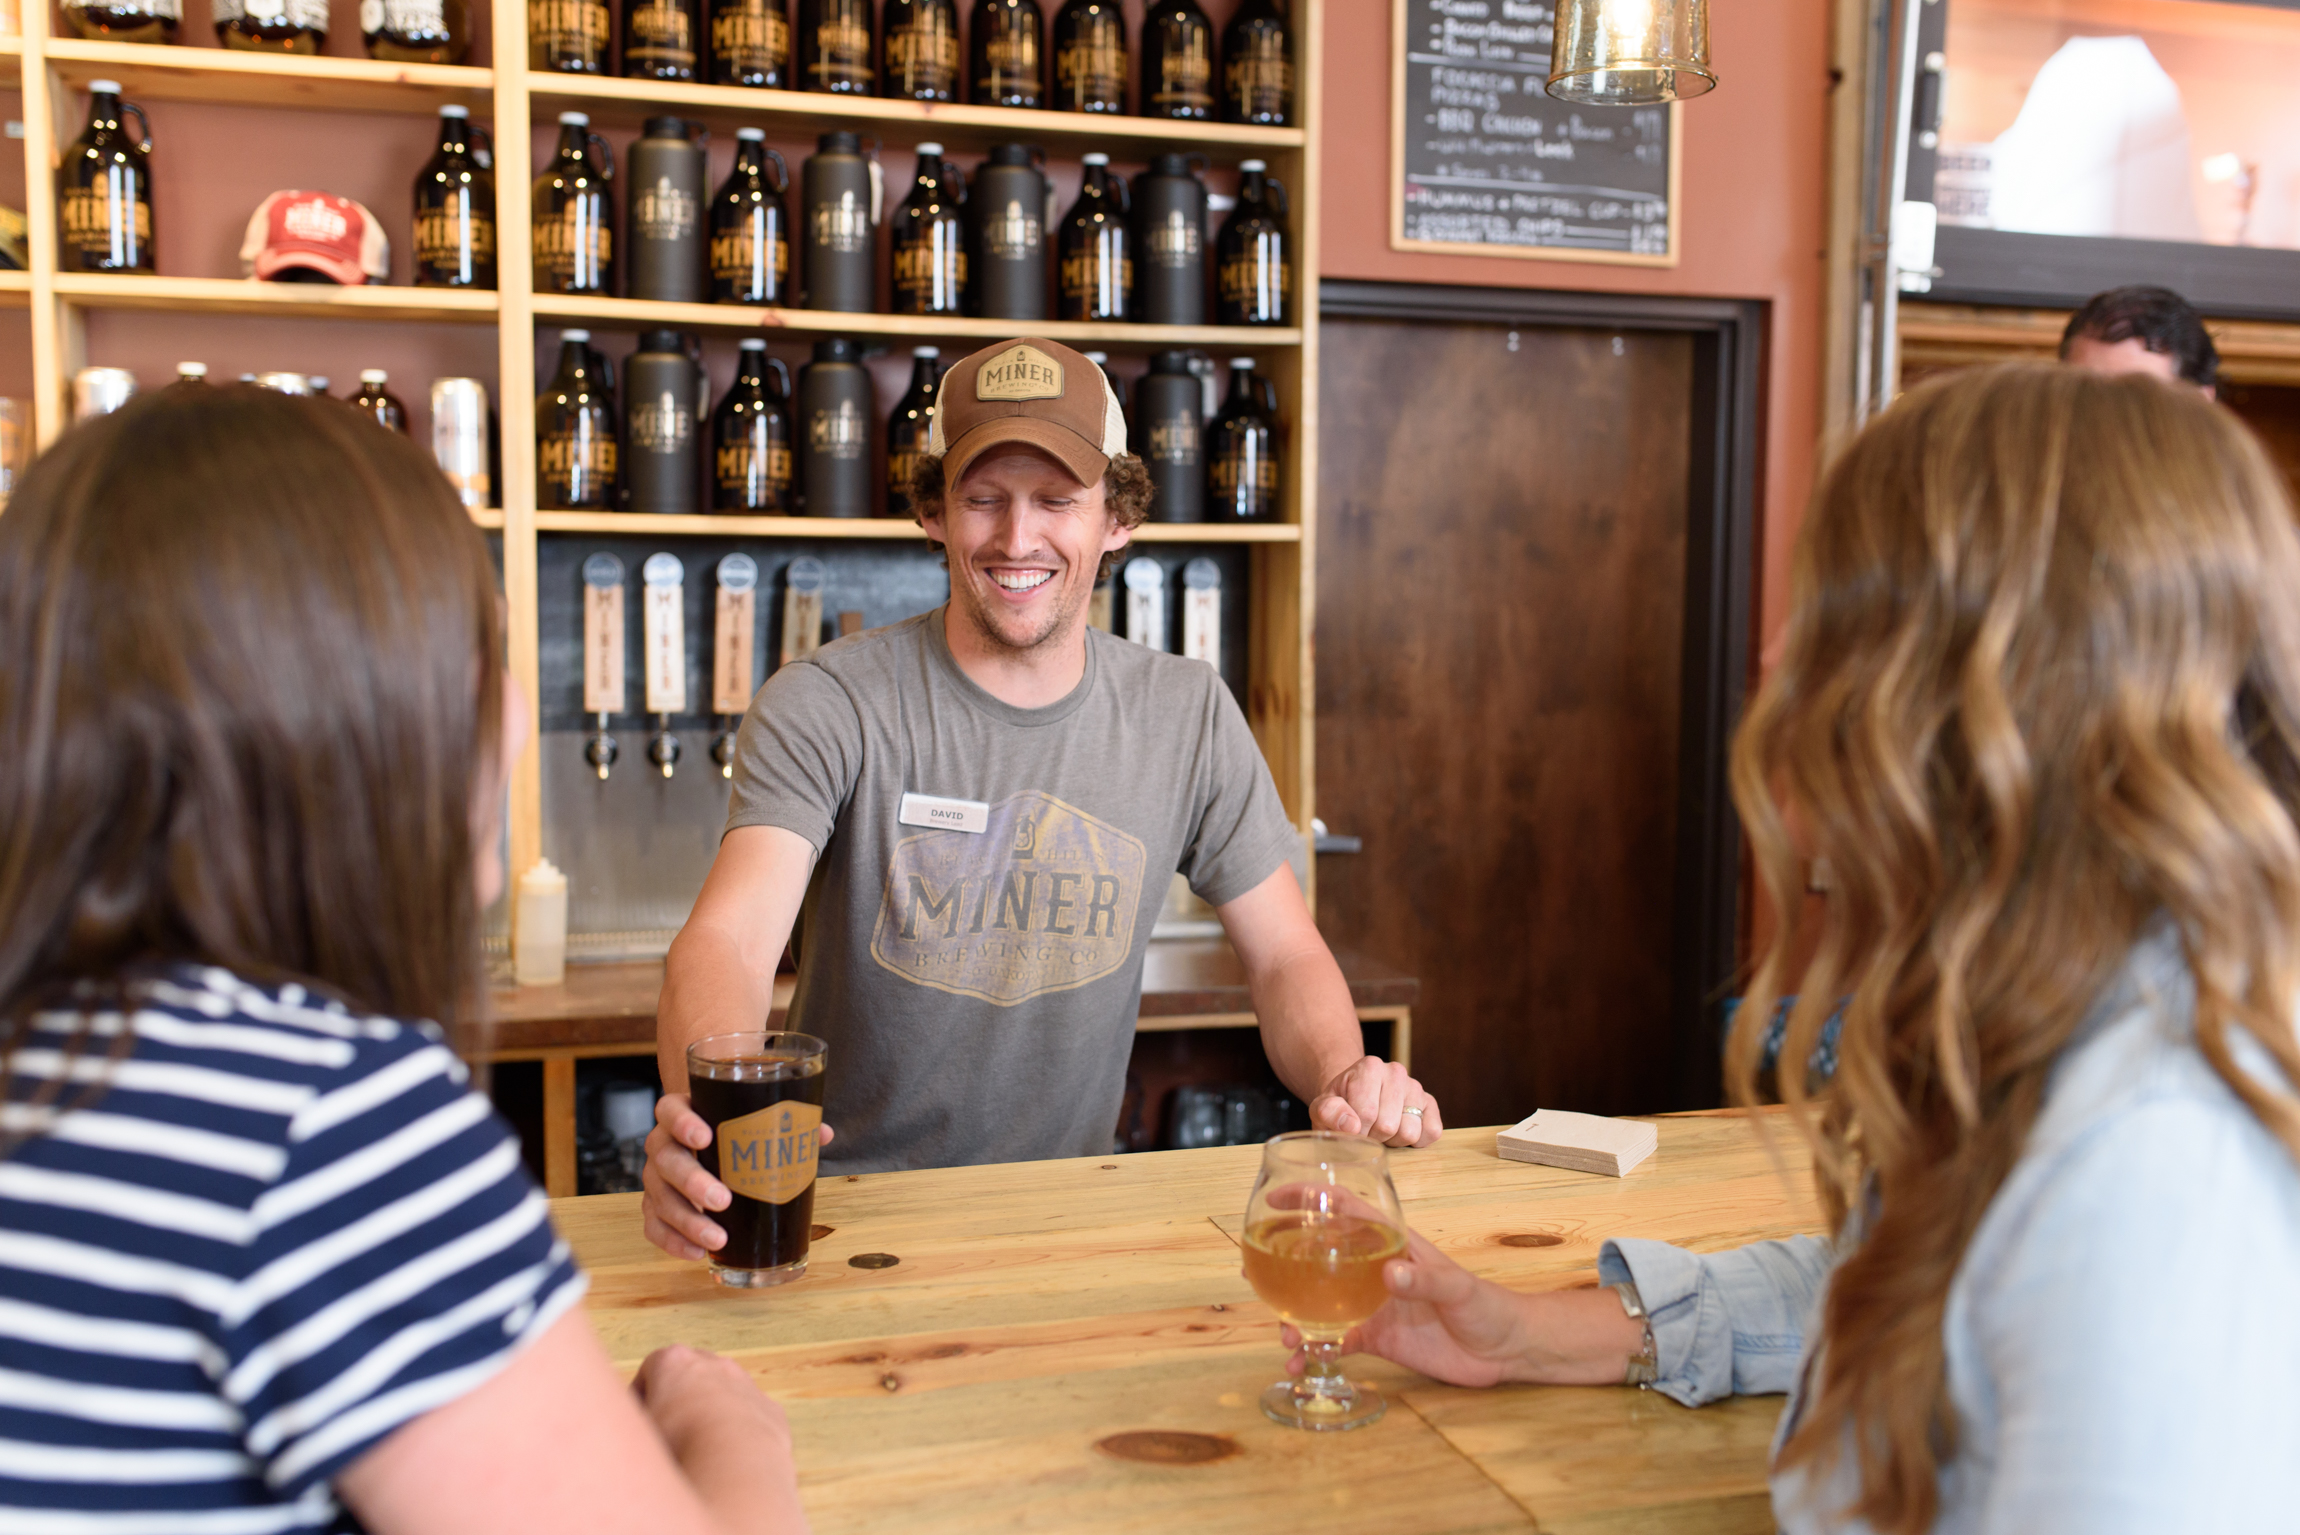 Guests enjoy a pint of beer at Miner Brewing Company near Hill City, South Dakota.